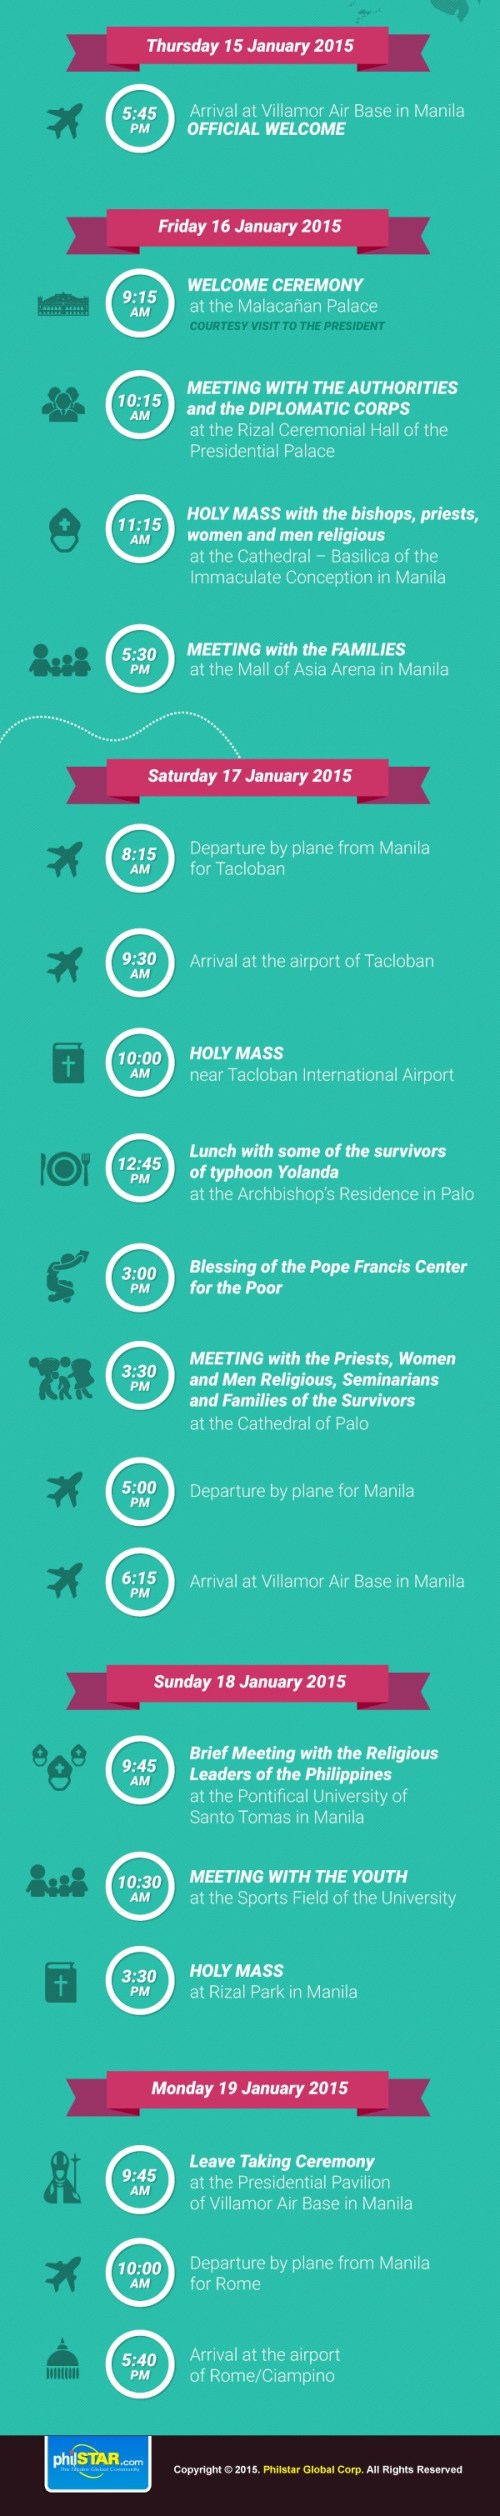 papal-visit-schedule-body